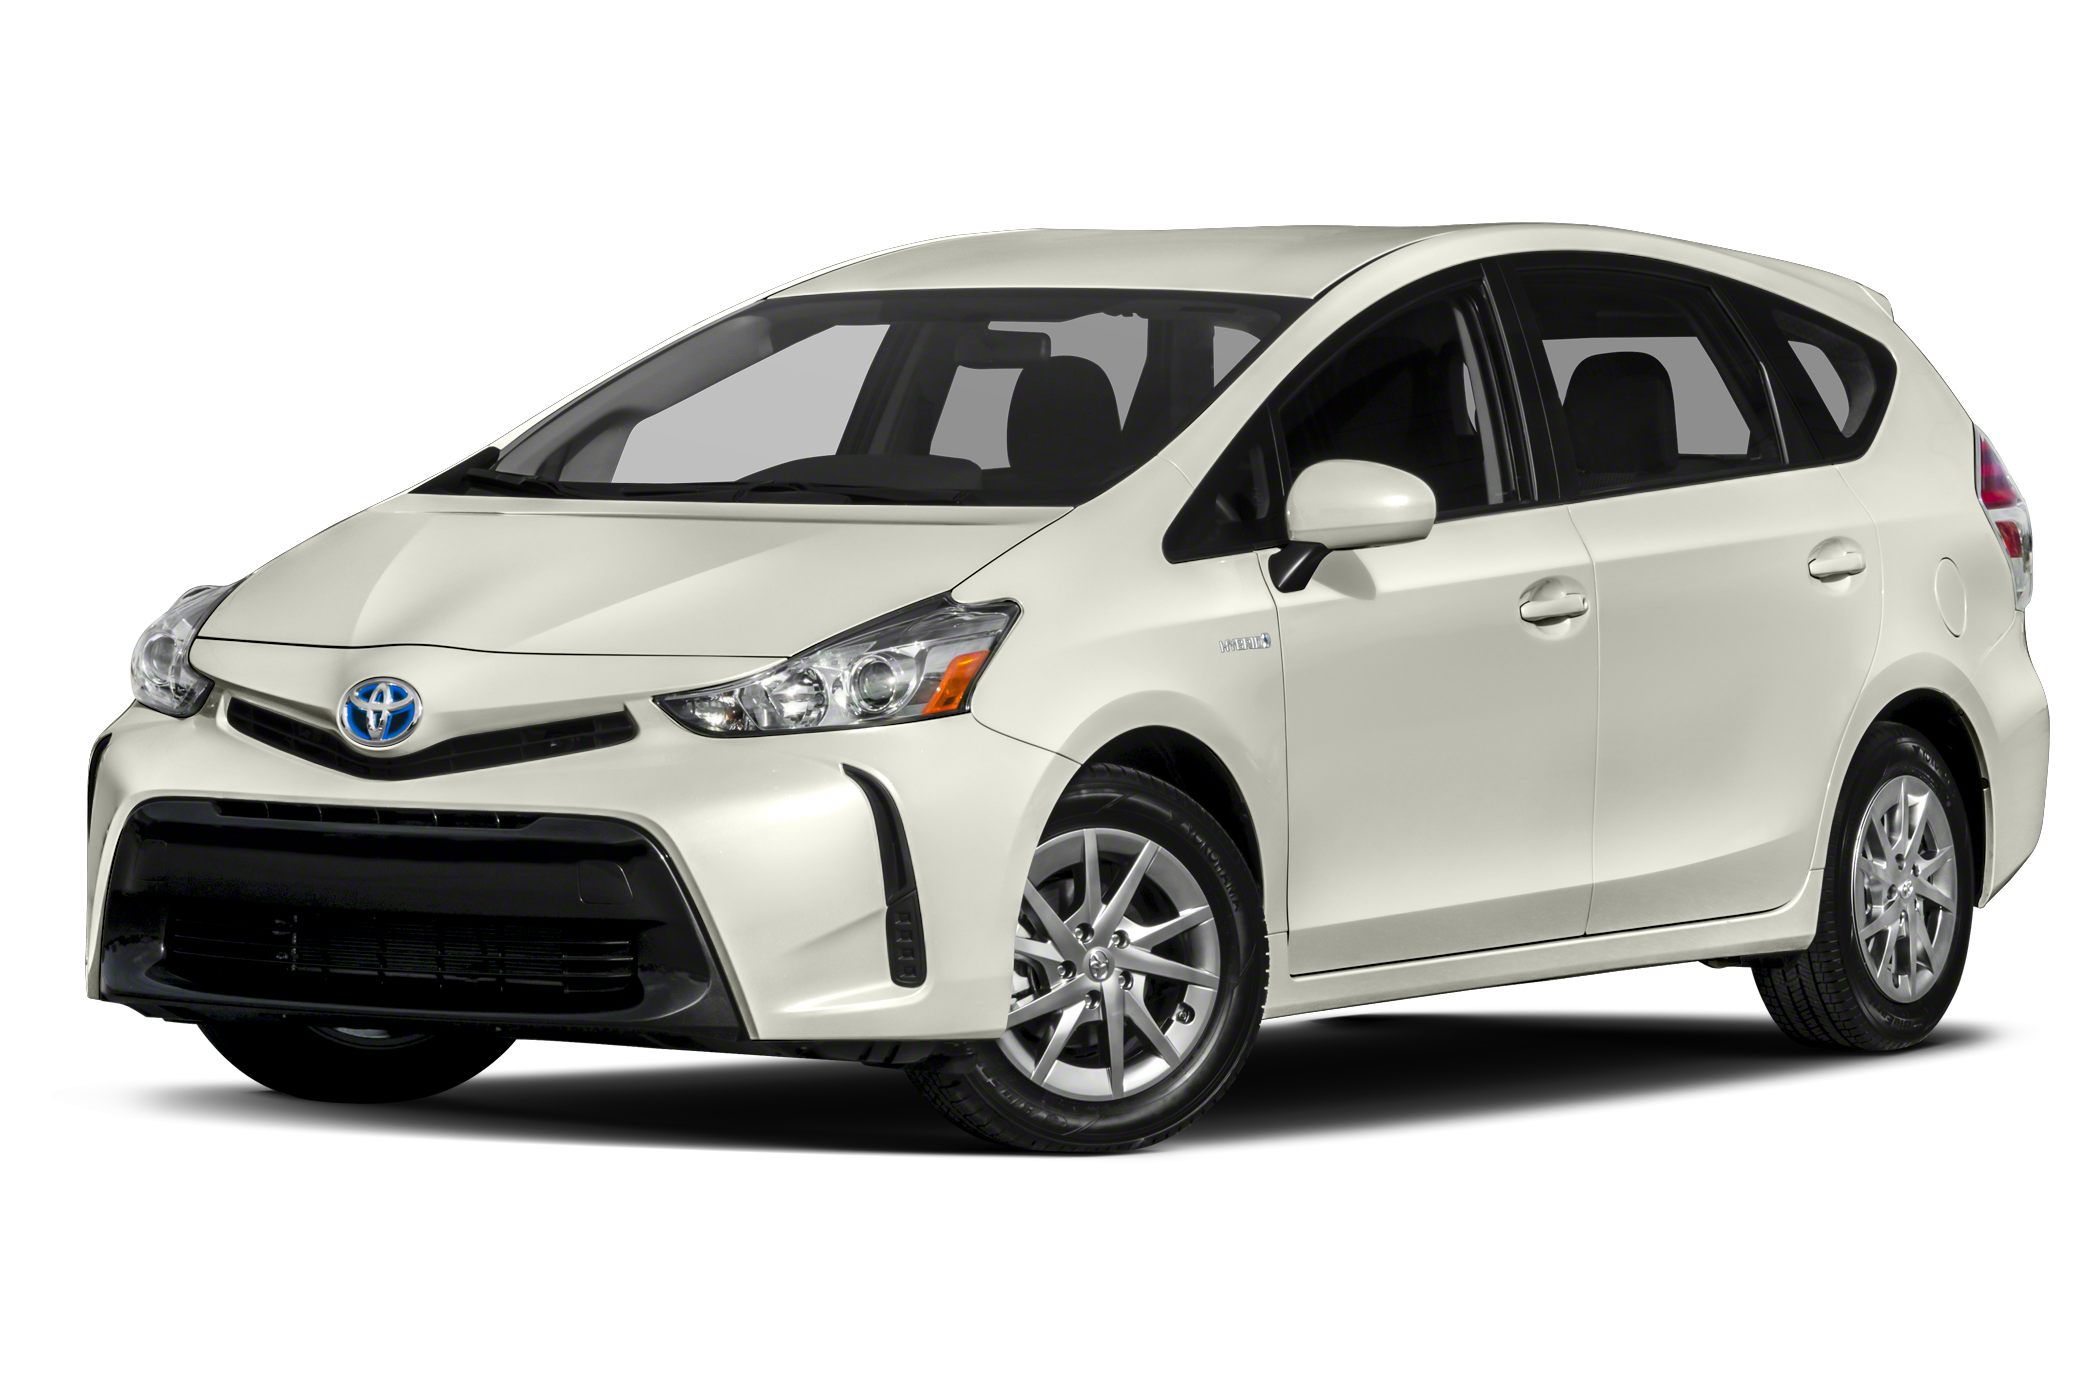 Toyota Prius v News, Photos and Buying Information - Autoblog